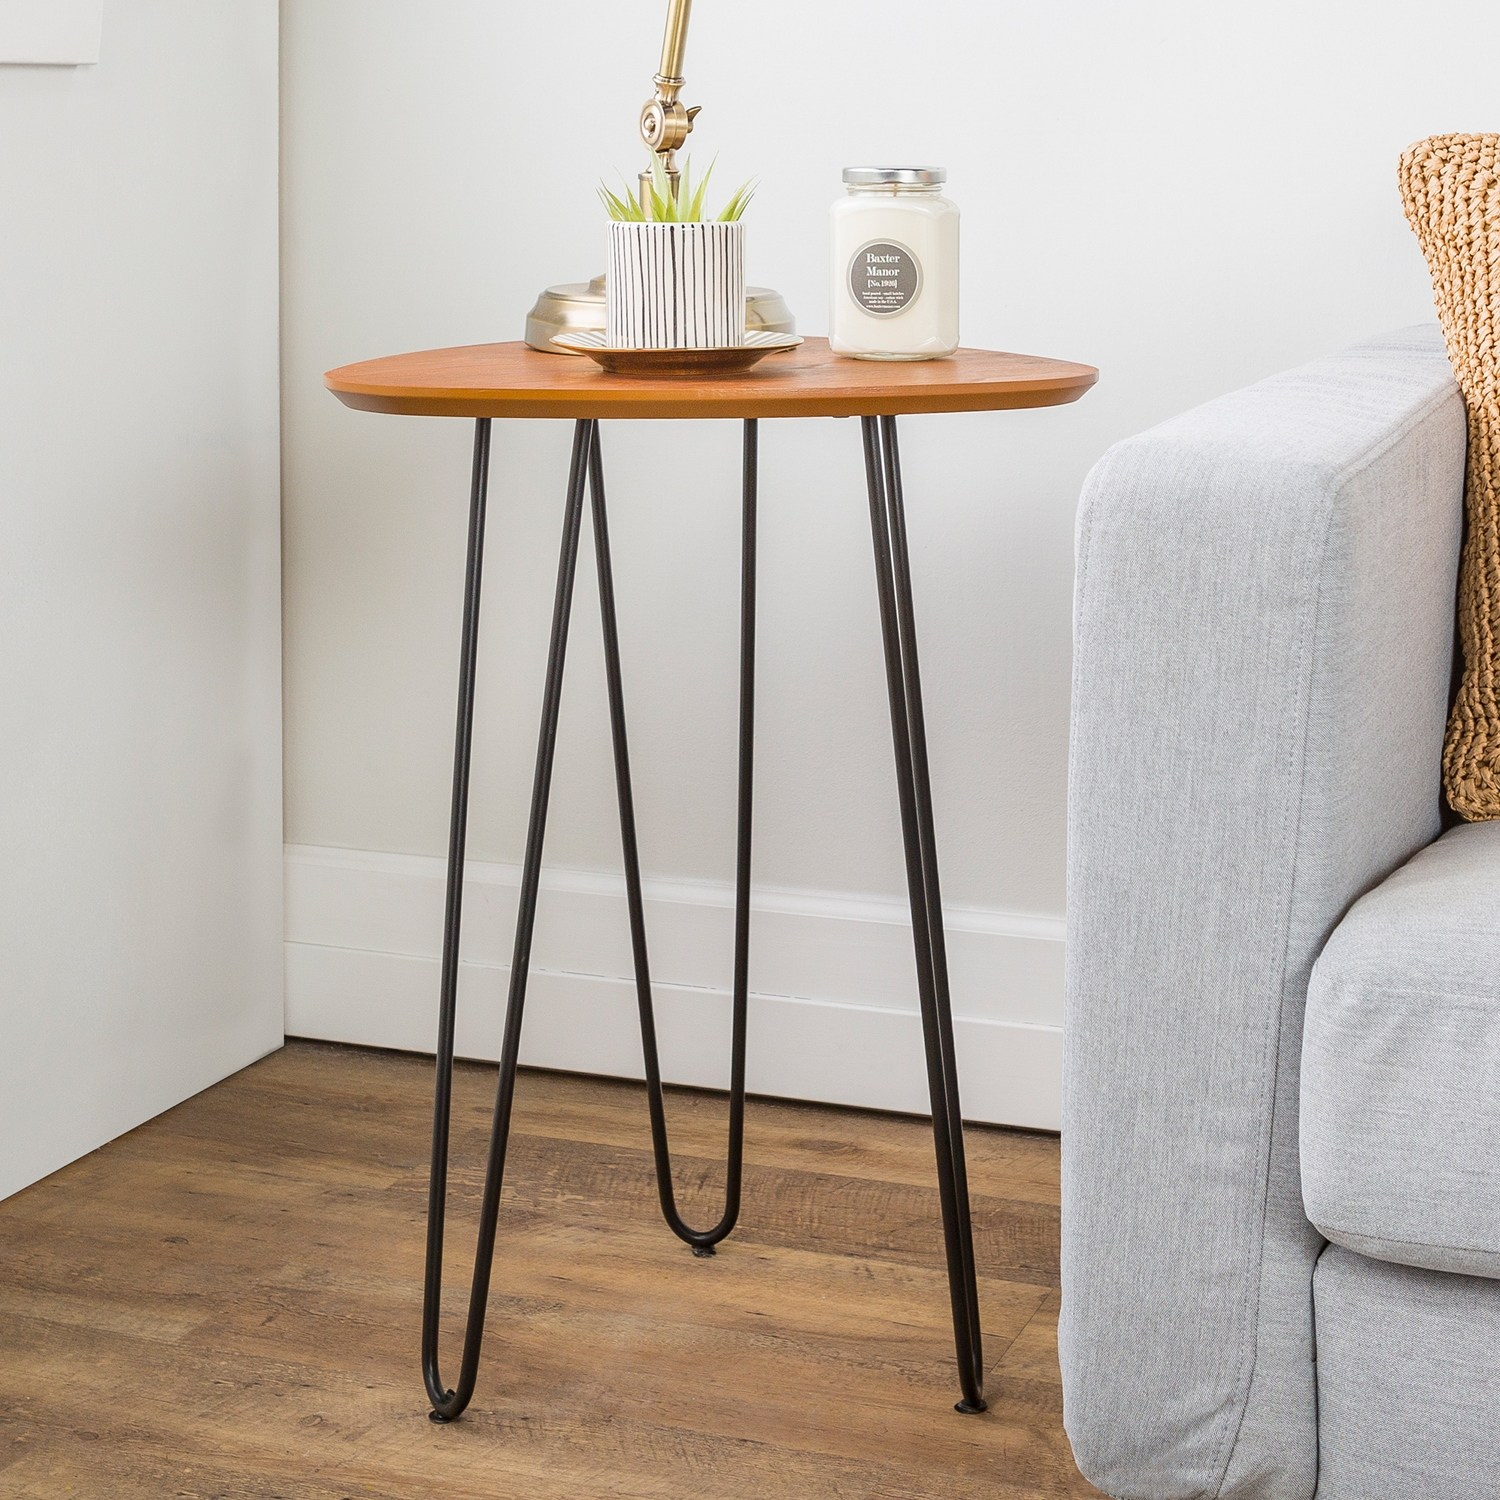 offex hairpin leg wood side table rich walnut finish room essentials accent free shipping today target threshold windham cabinet marble black rustic square coffee toronto foldable